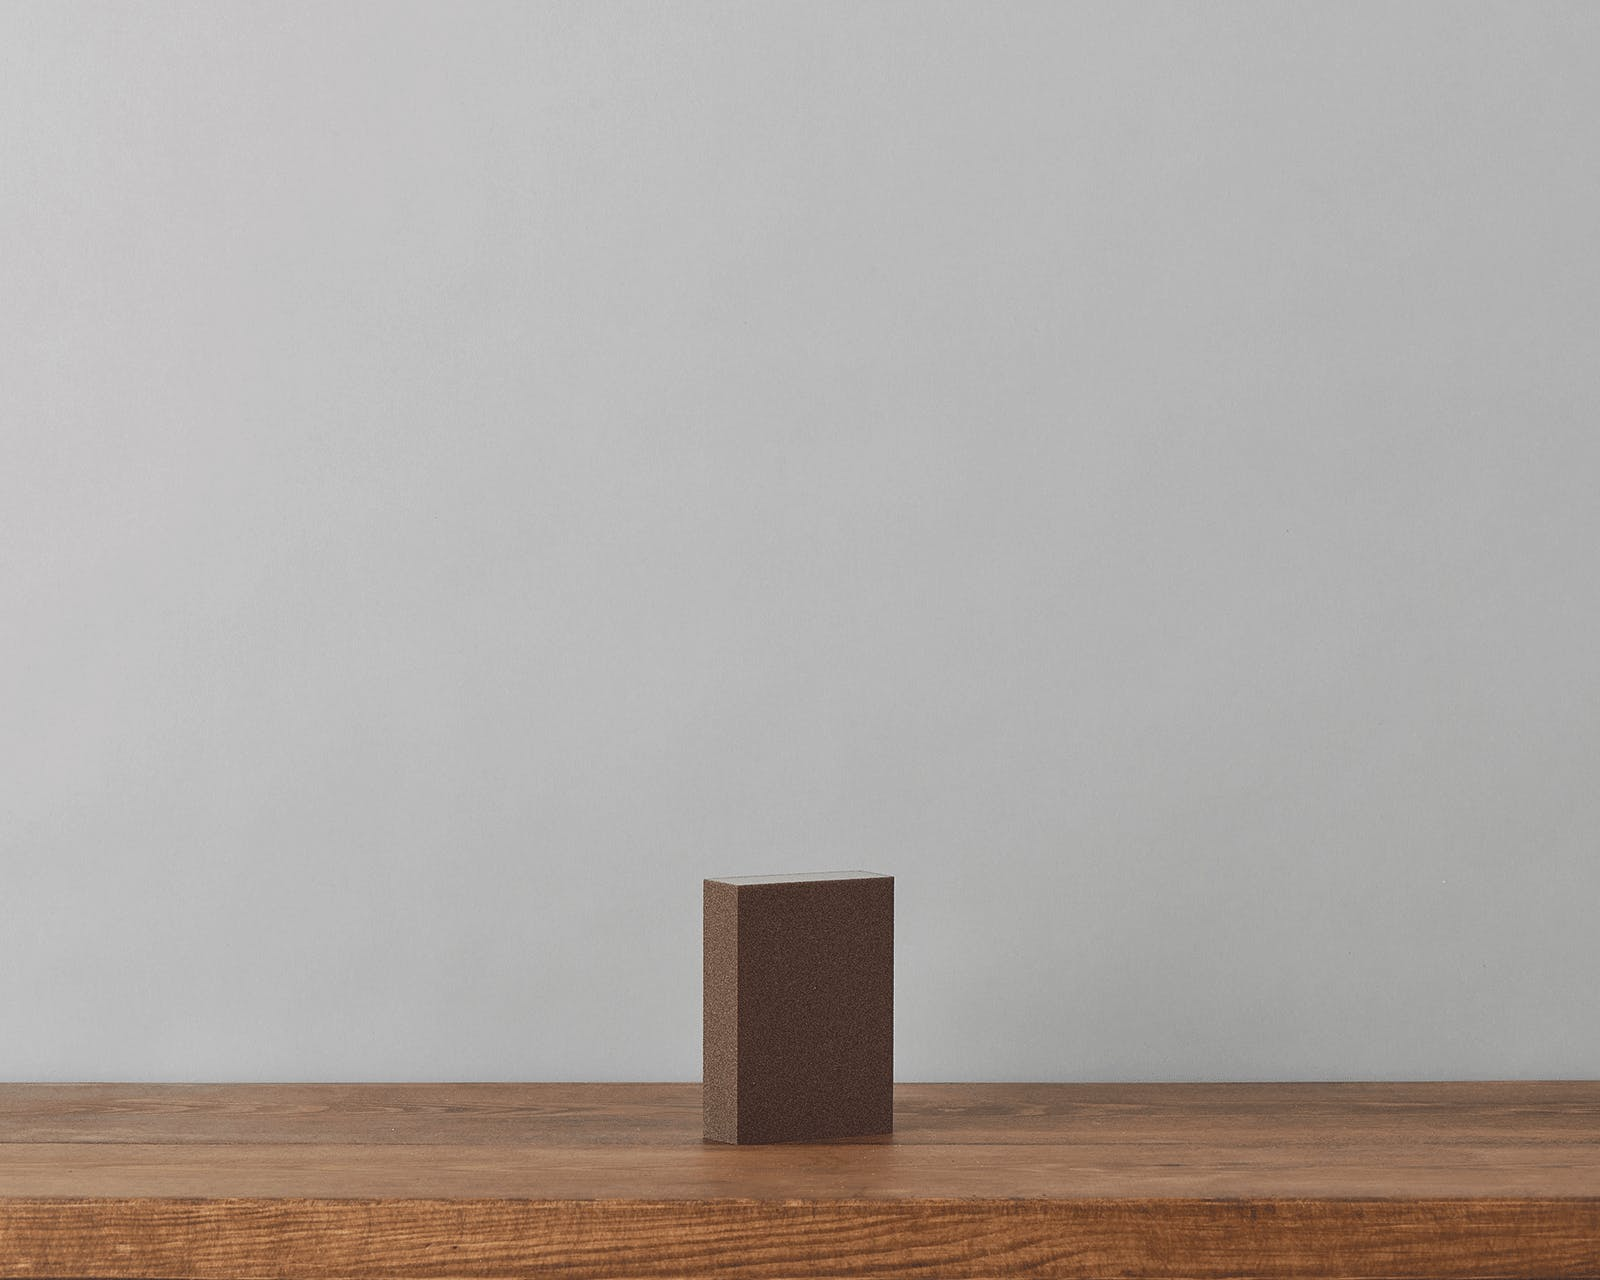 An image of the sanding block eco supplies against a grey background